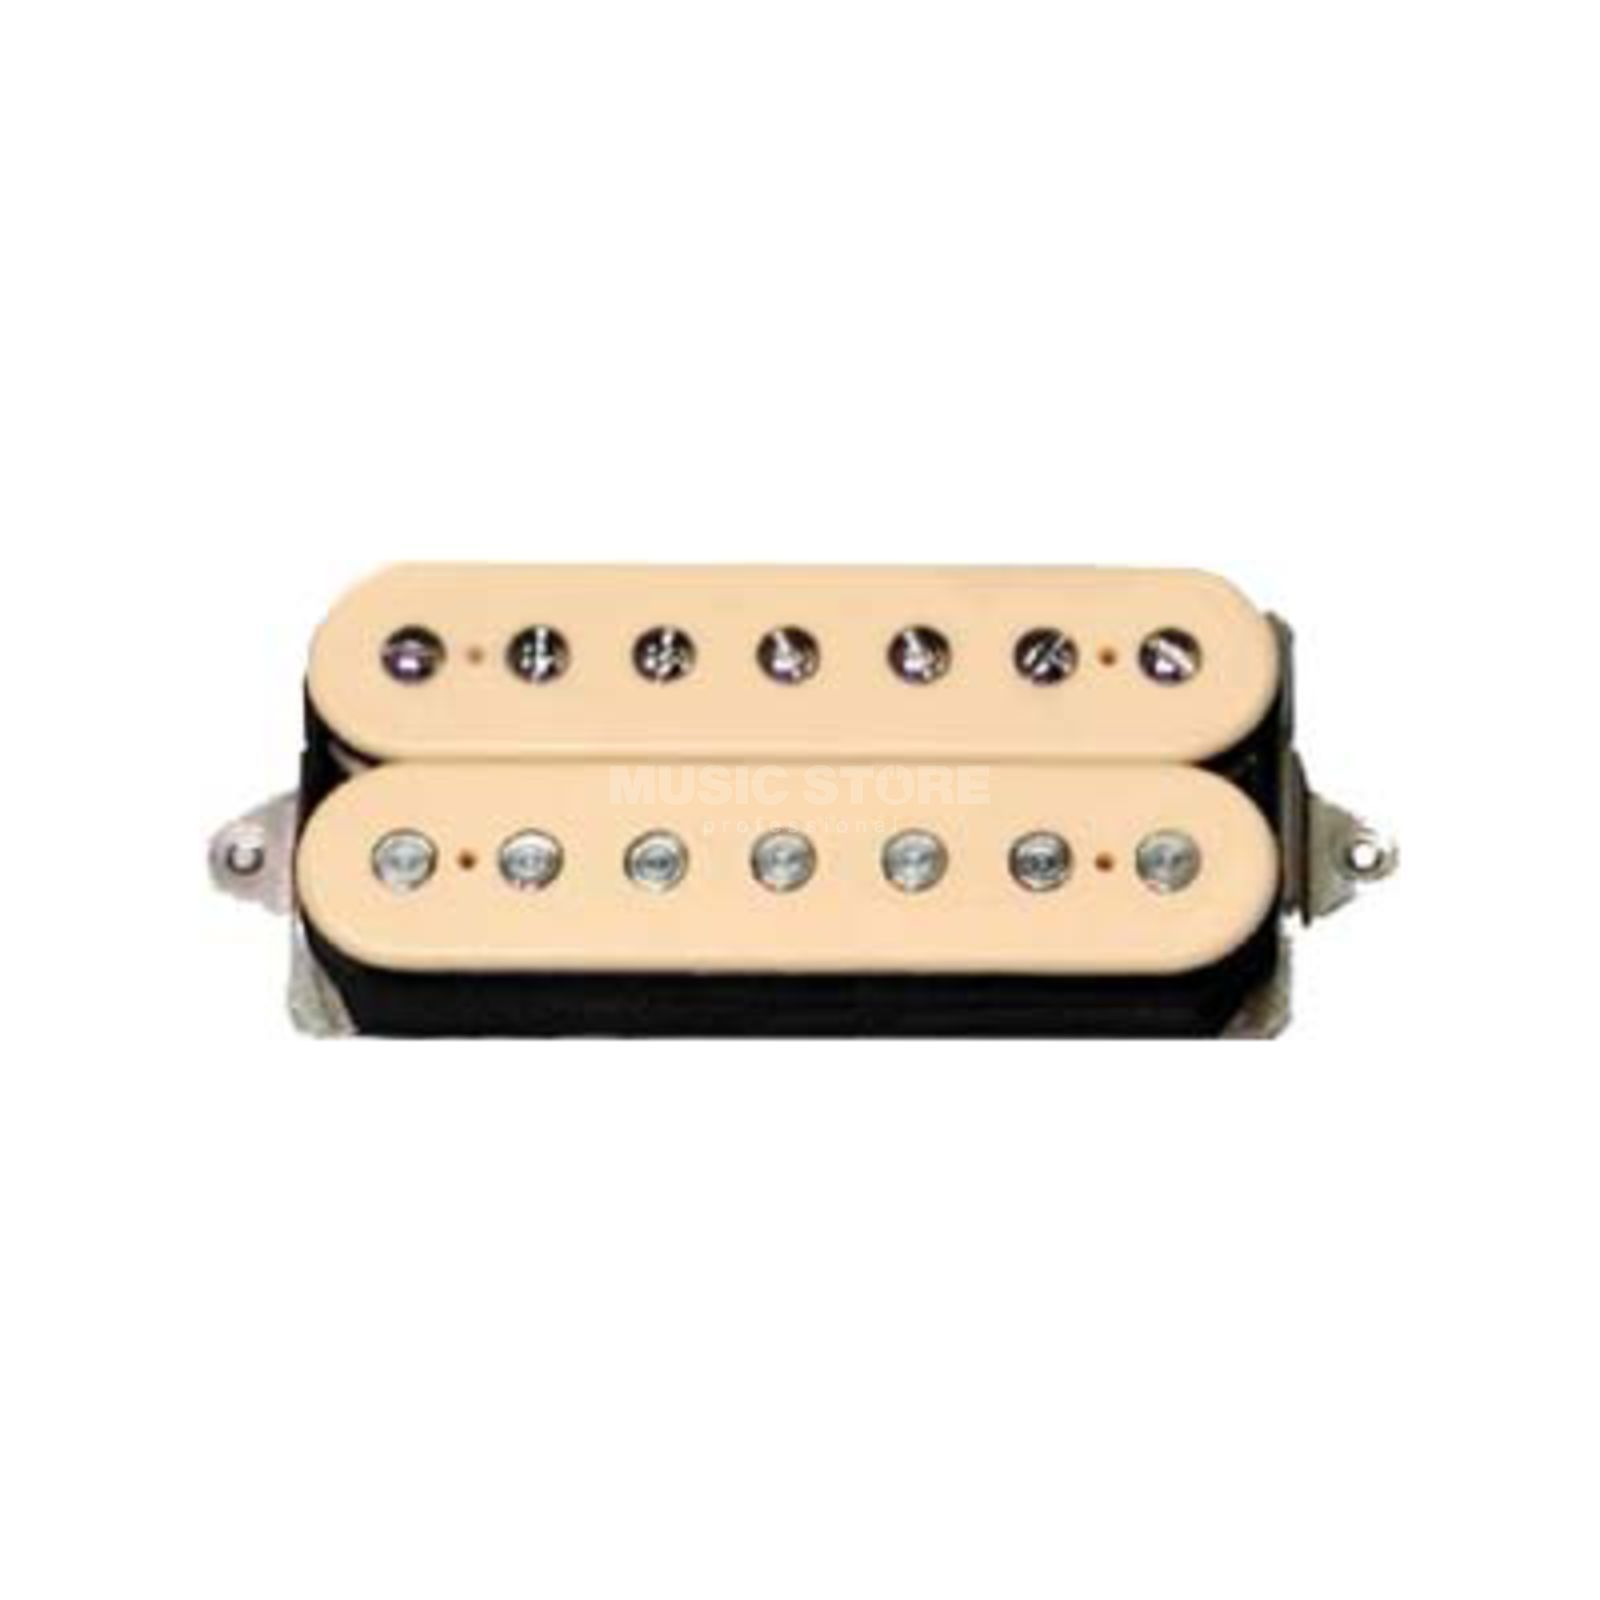 DiMarzio DP793 CR Air Norton 7 7-String Produktbild